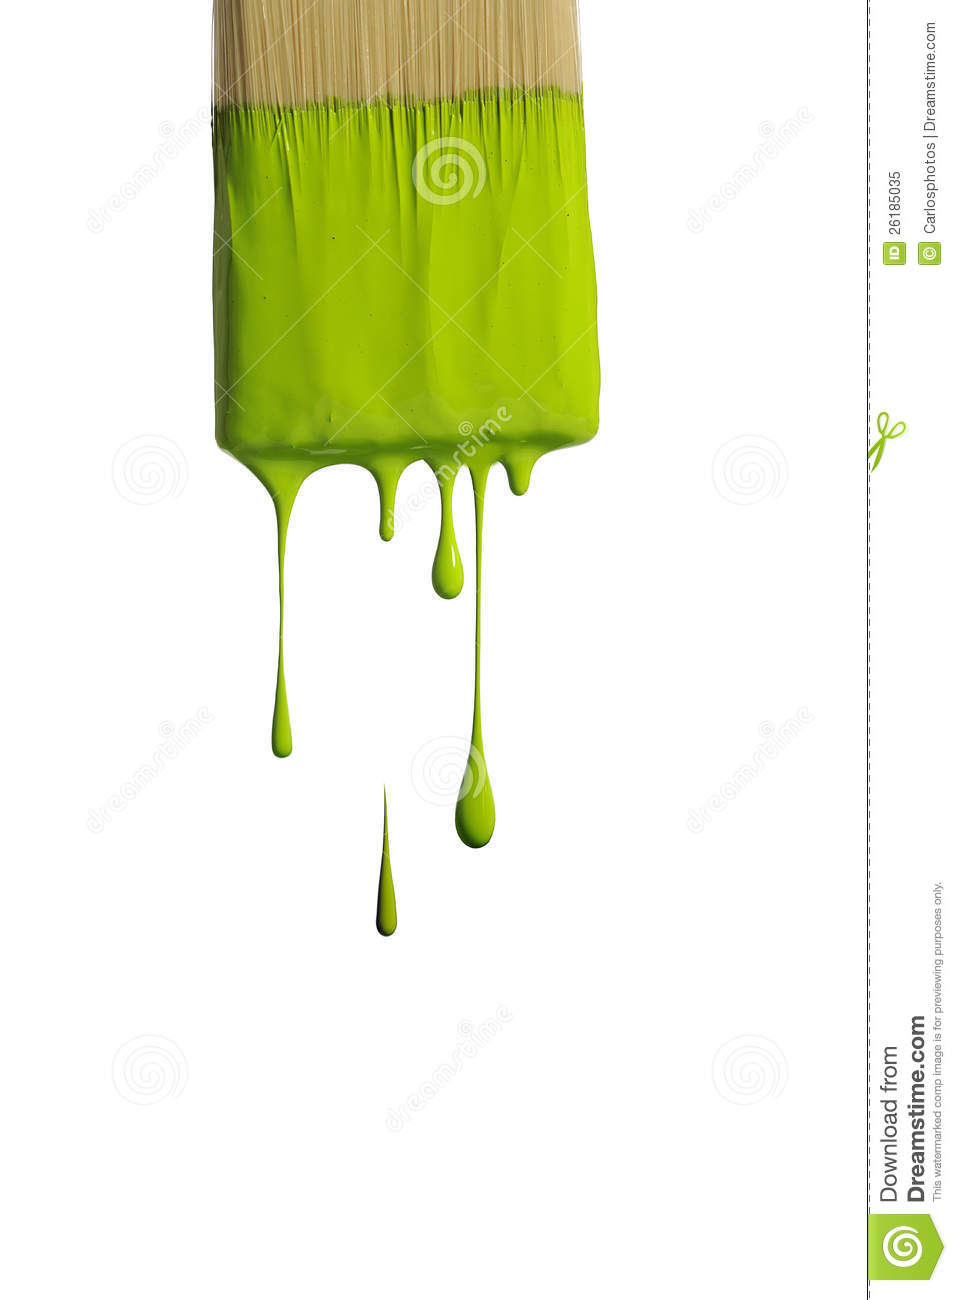 Green Paint Dripping From A Brush Stock Image Image Of